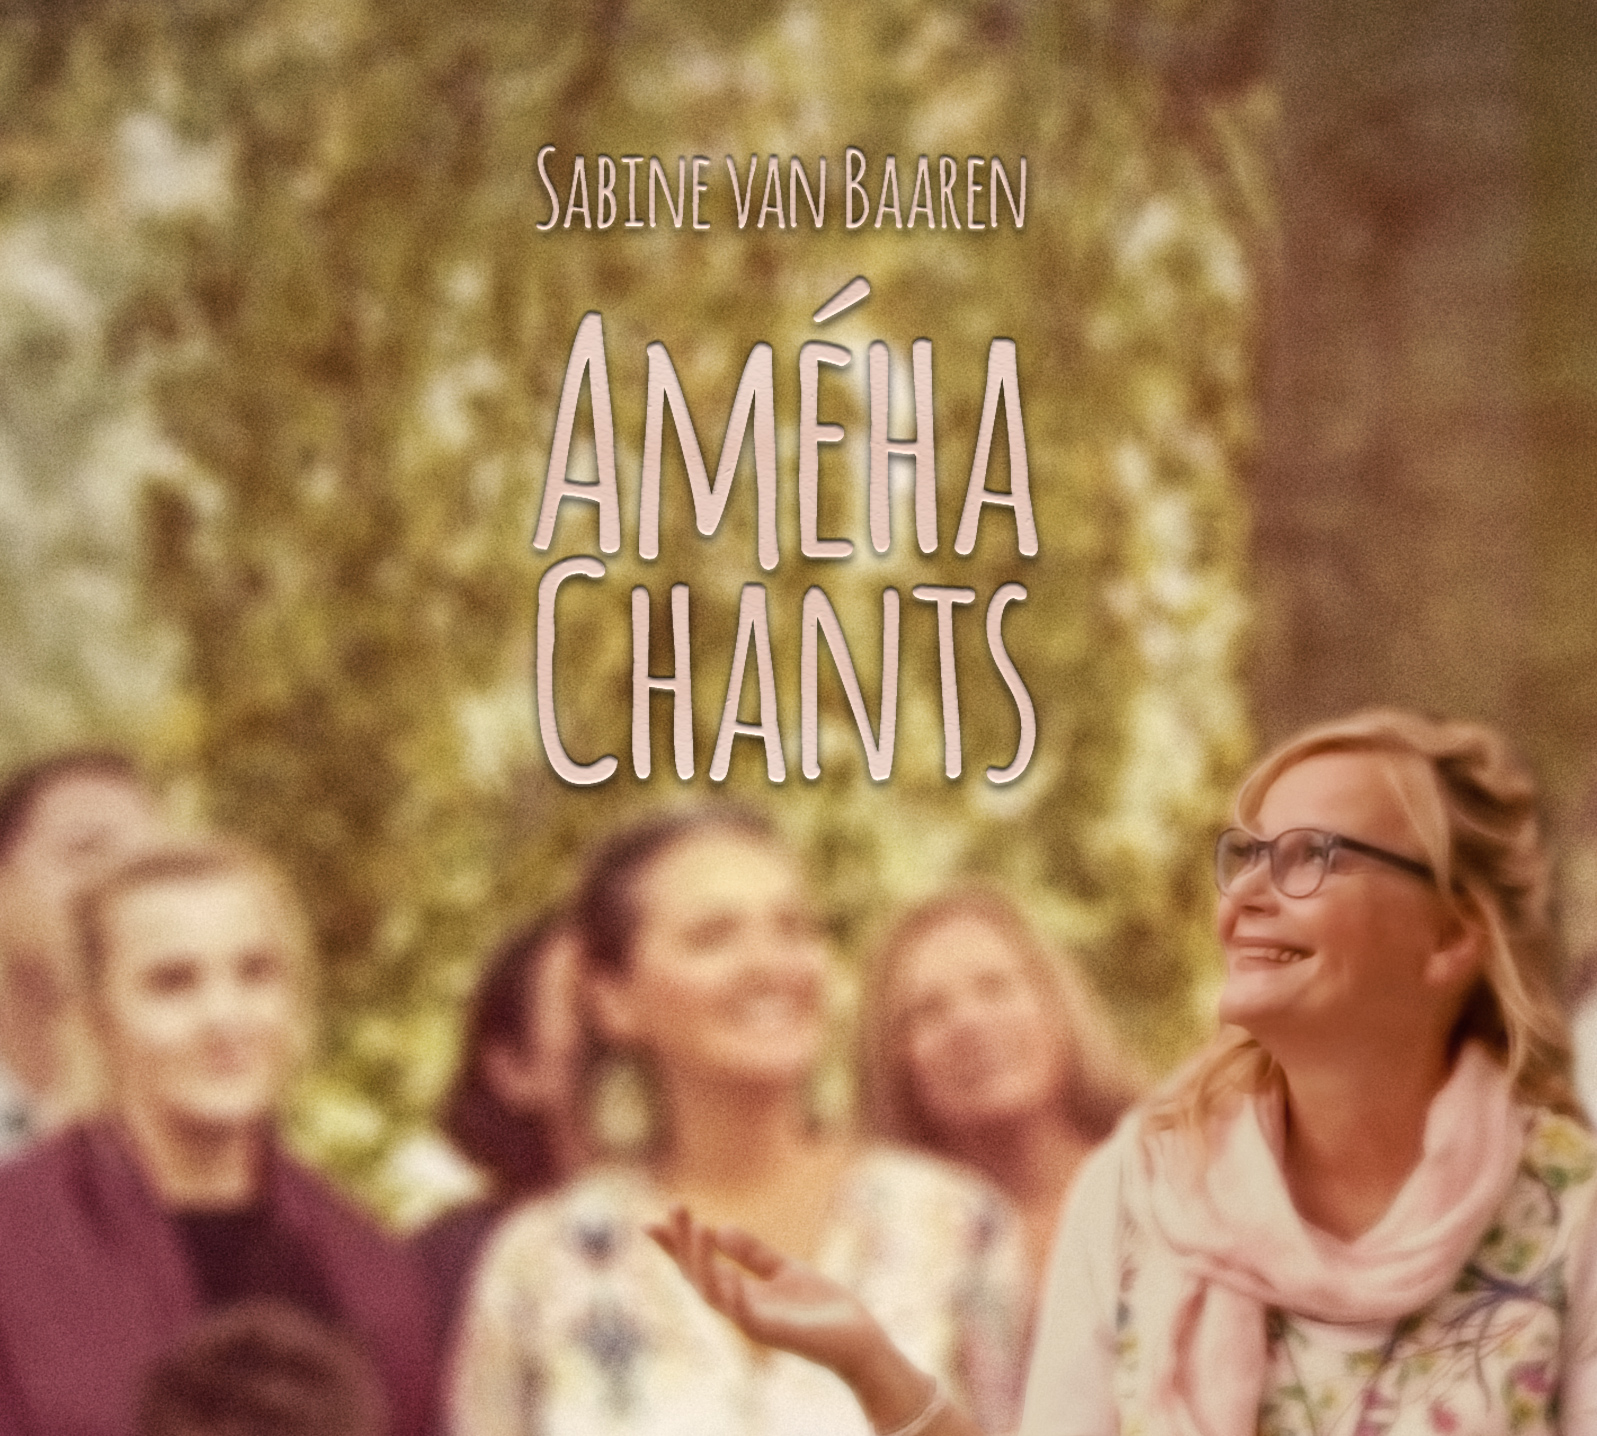 Cd Améha Chants